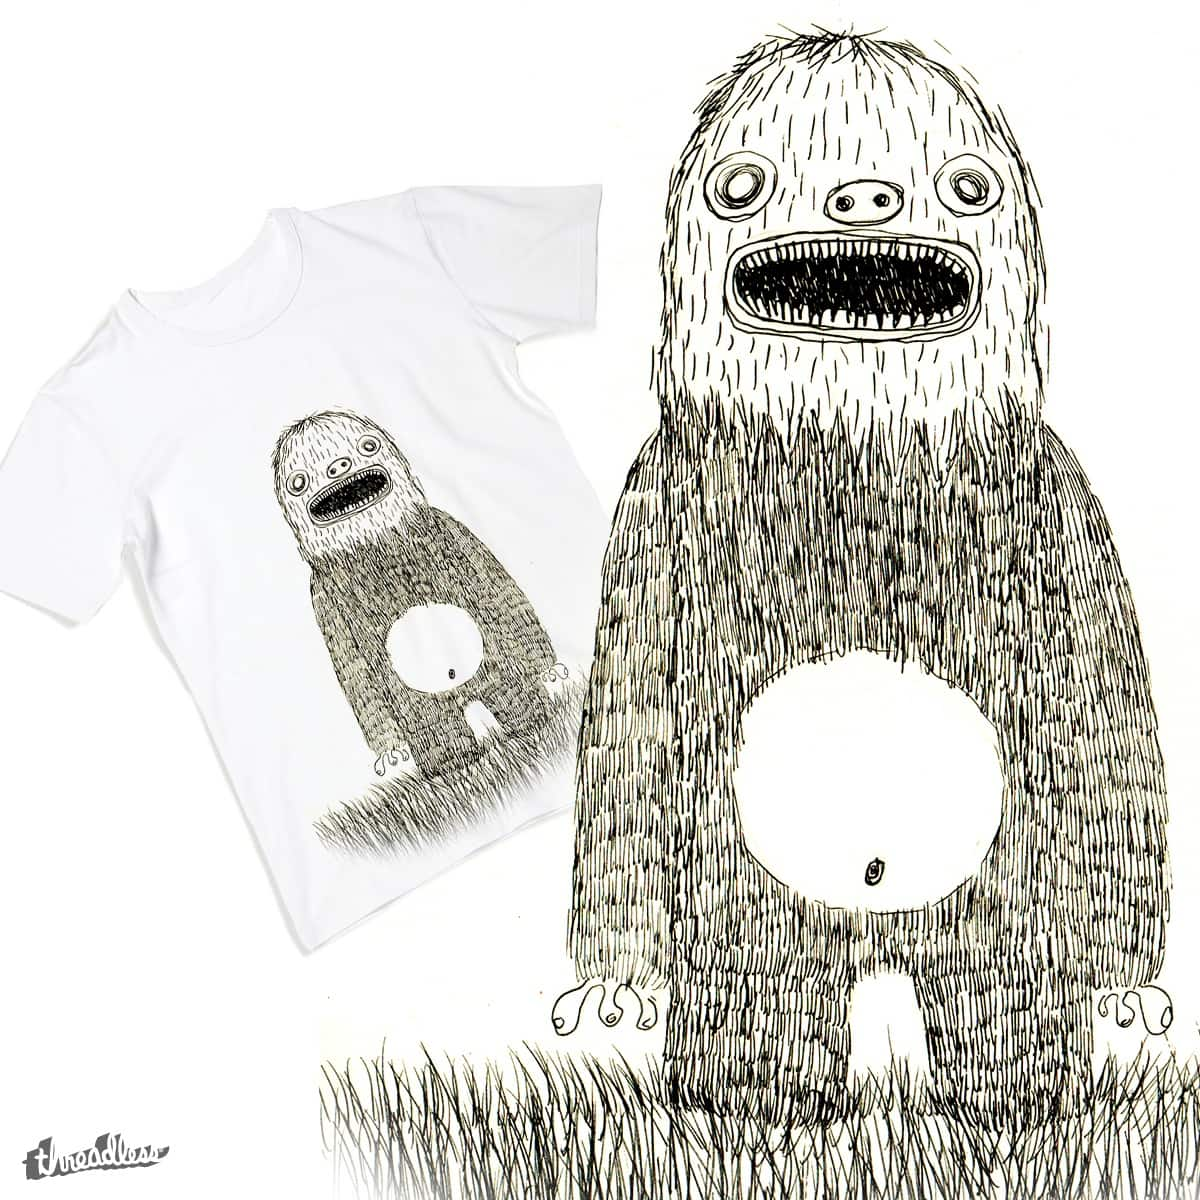 The Sensitive Monster by Pimaind on Threadless